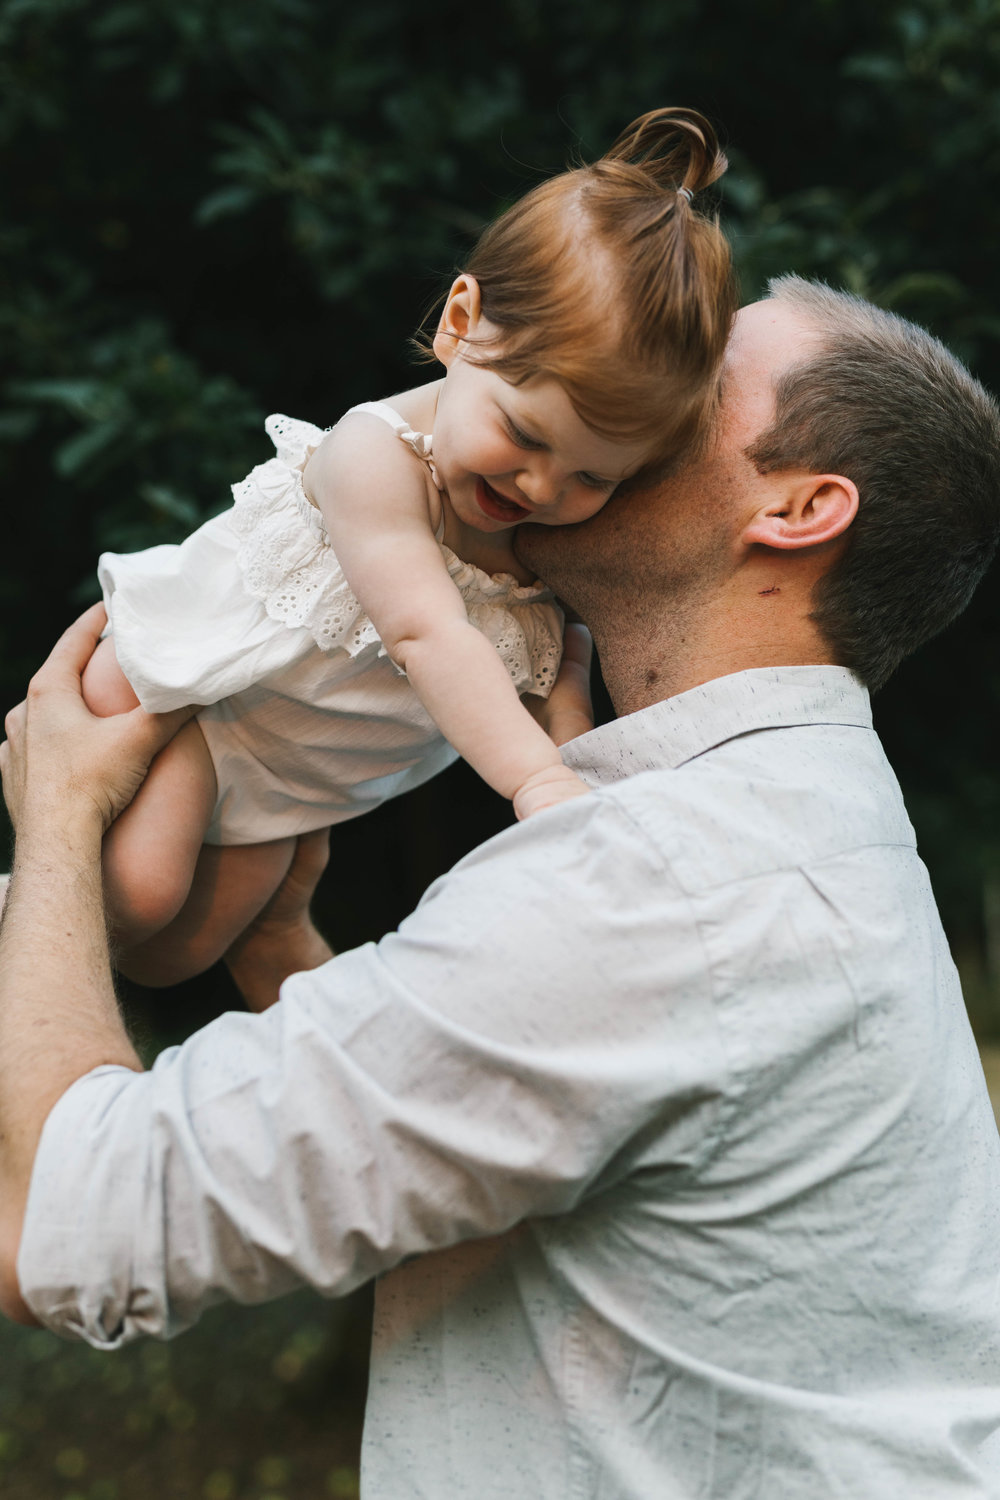 Playful and sweet family session in Issaquah at golden hour and twilight Mom and Dad with their toddler photographed by Chelsea Macor Photography in a playful and intimate way-12.jpg